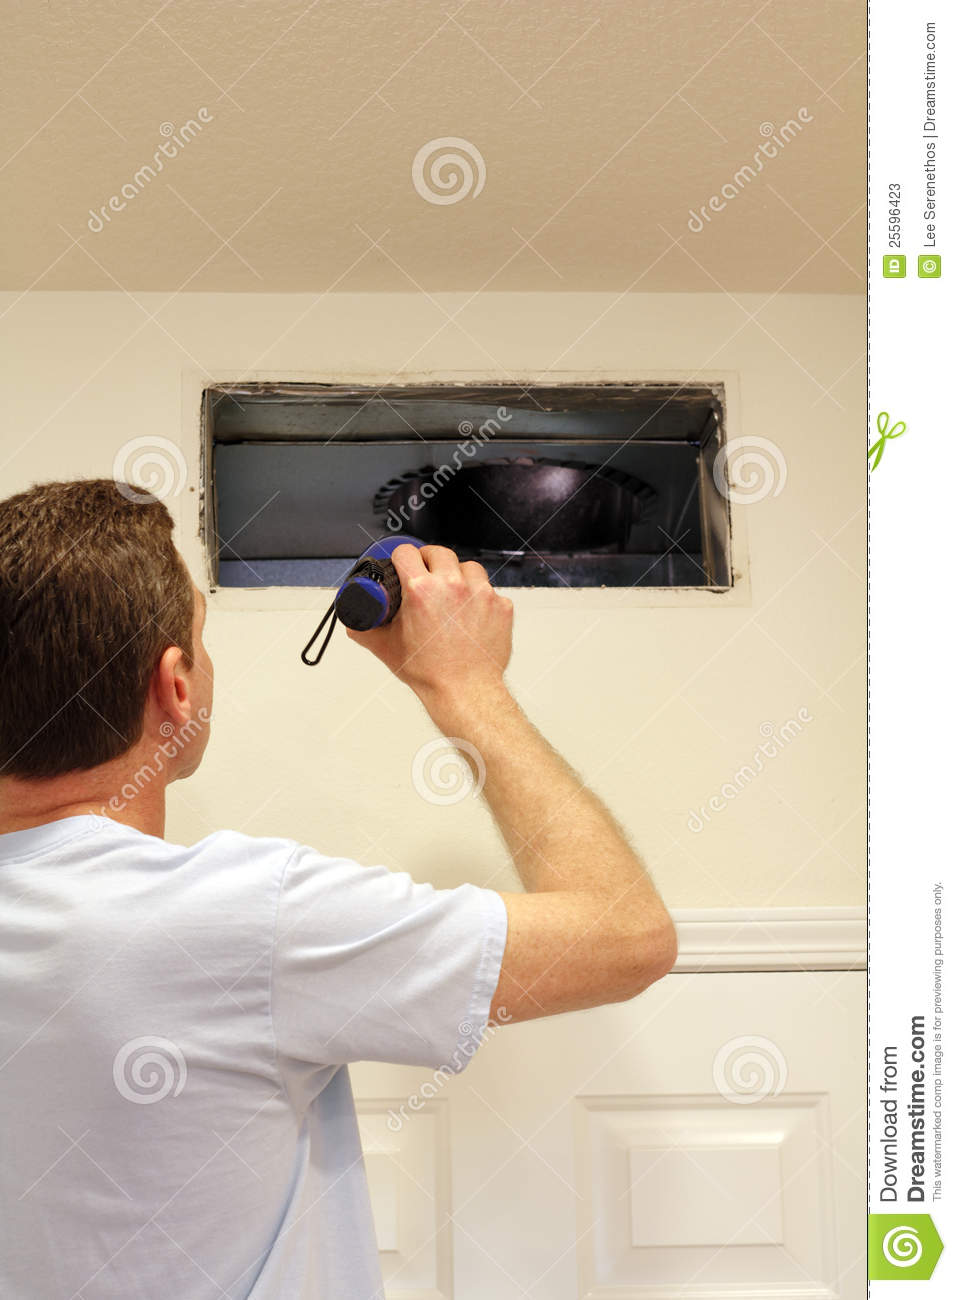 Man Looking into Air Duct